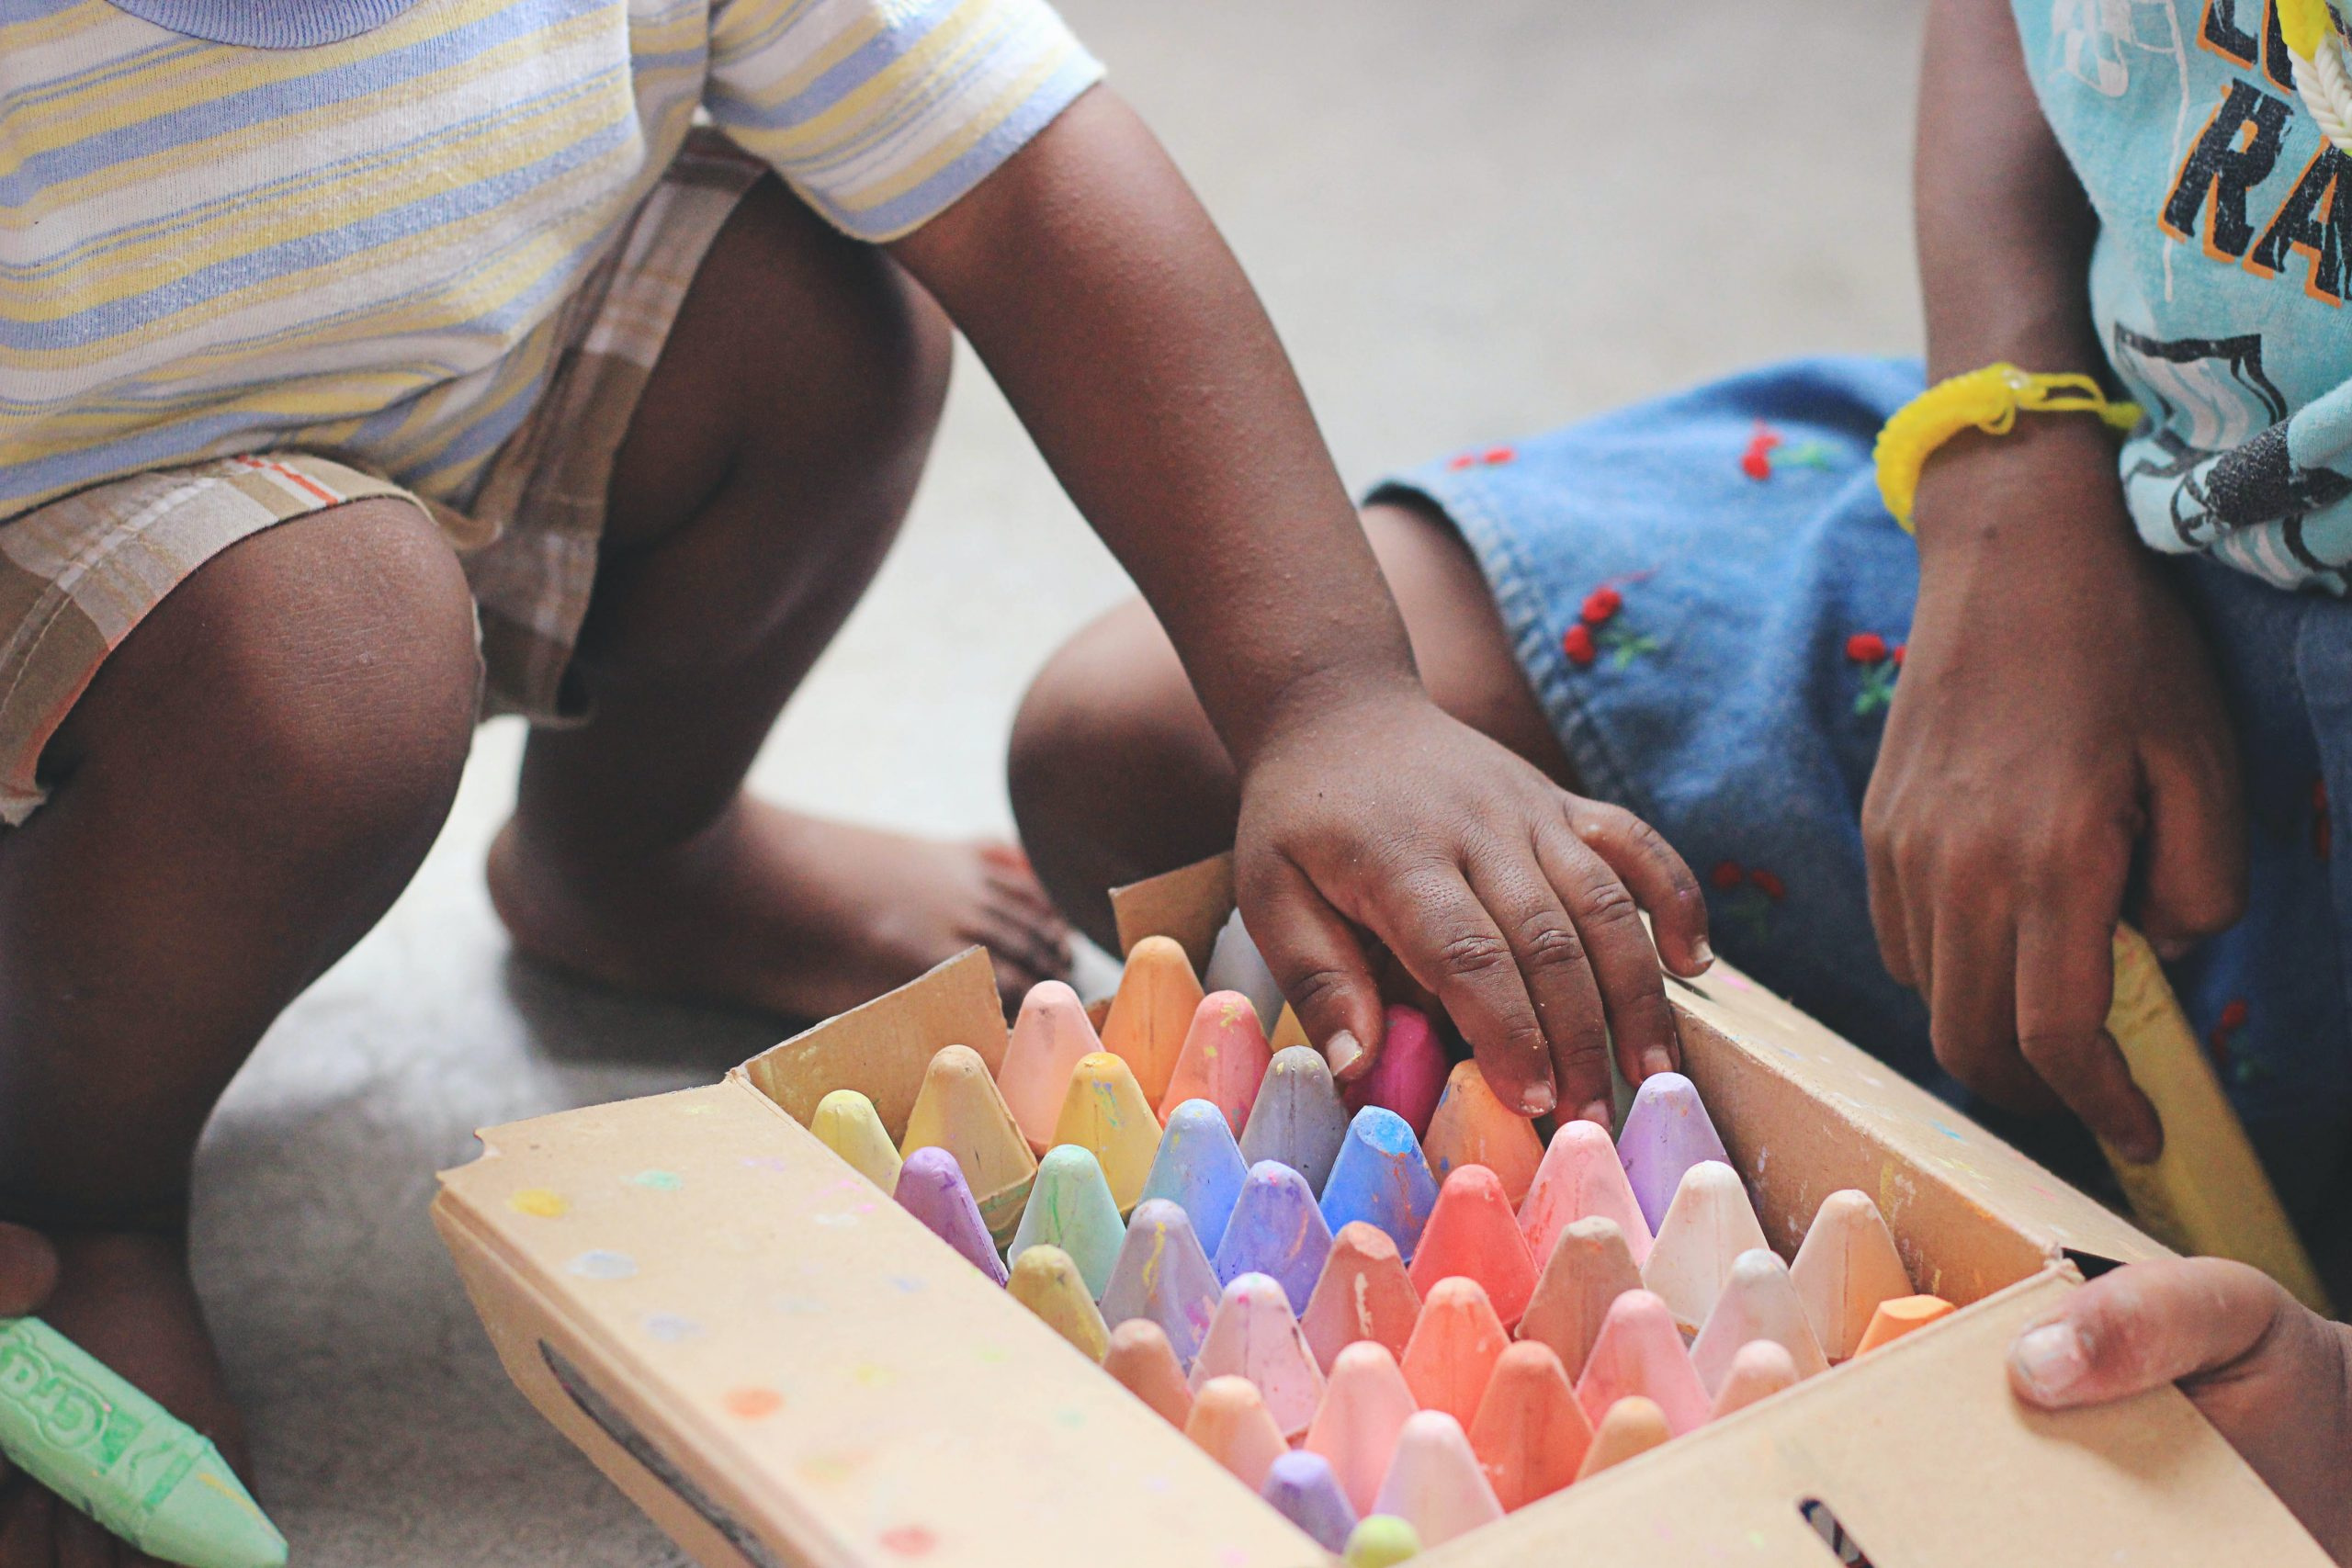 Kids playing together with chalk soon going to child psychologist for autism testing near Thousand Oaks, Ca